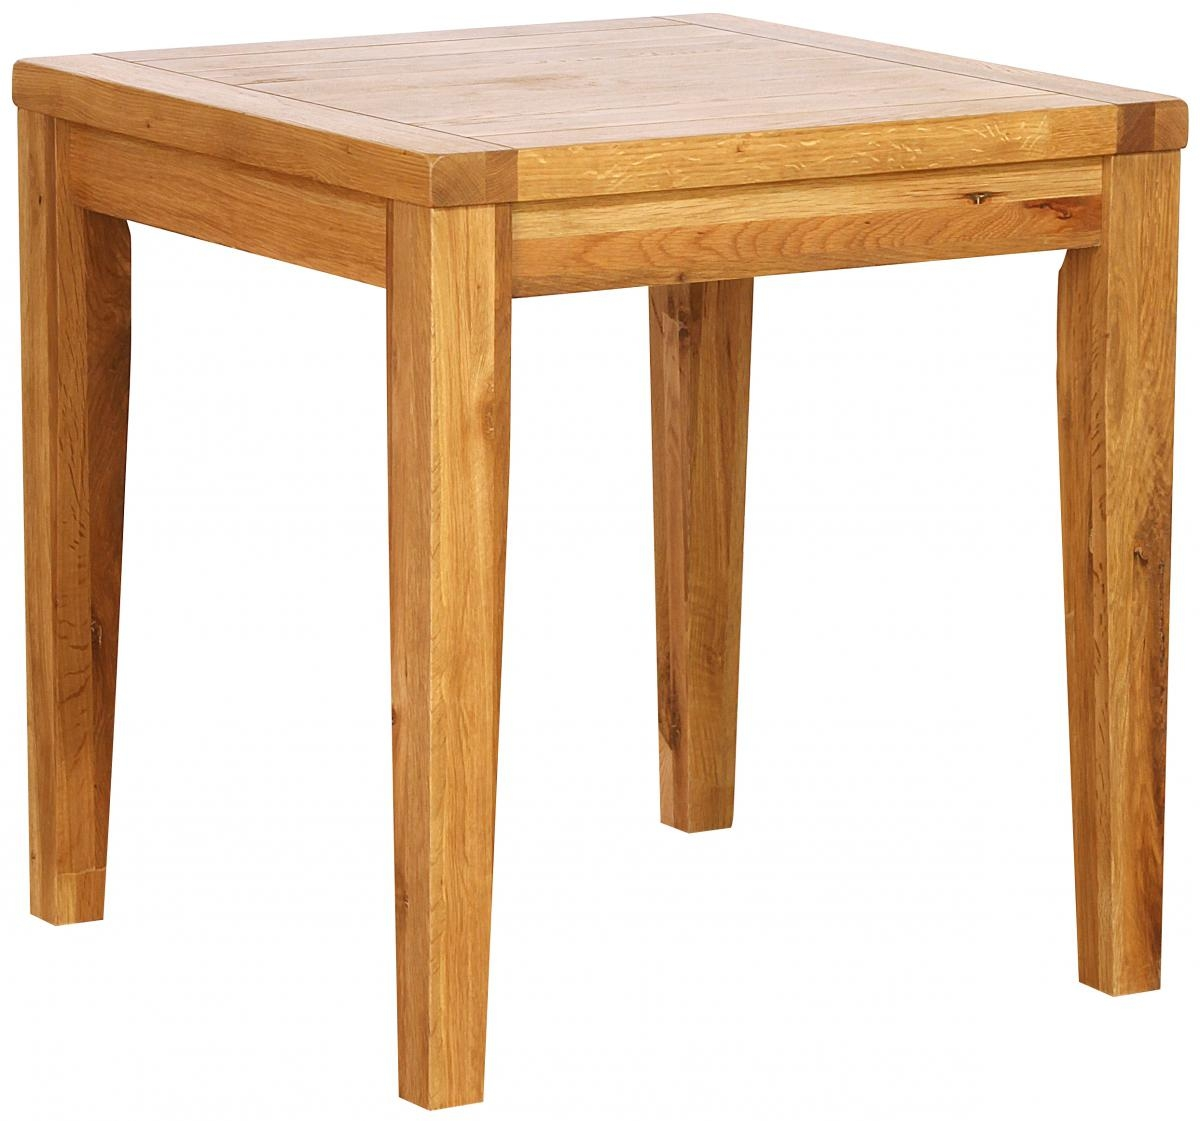 Buy Vancouver Petite Oak Dining Table Square 75cm Online  : 3 Vancouver Petite Oak Dining Table Square 75cm from www.choicefurnituresuperstore.co.uk size 1200 x 1121 jpeg 285kB